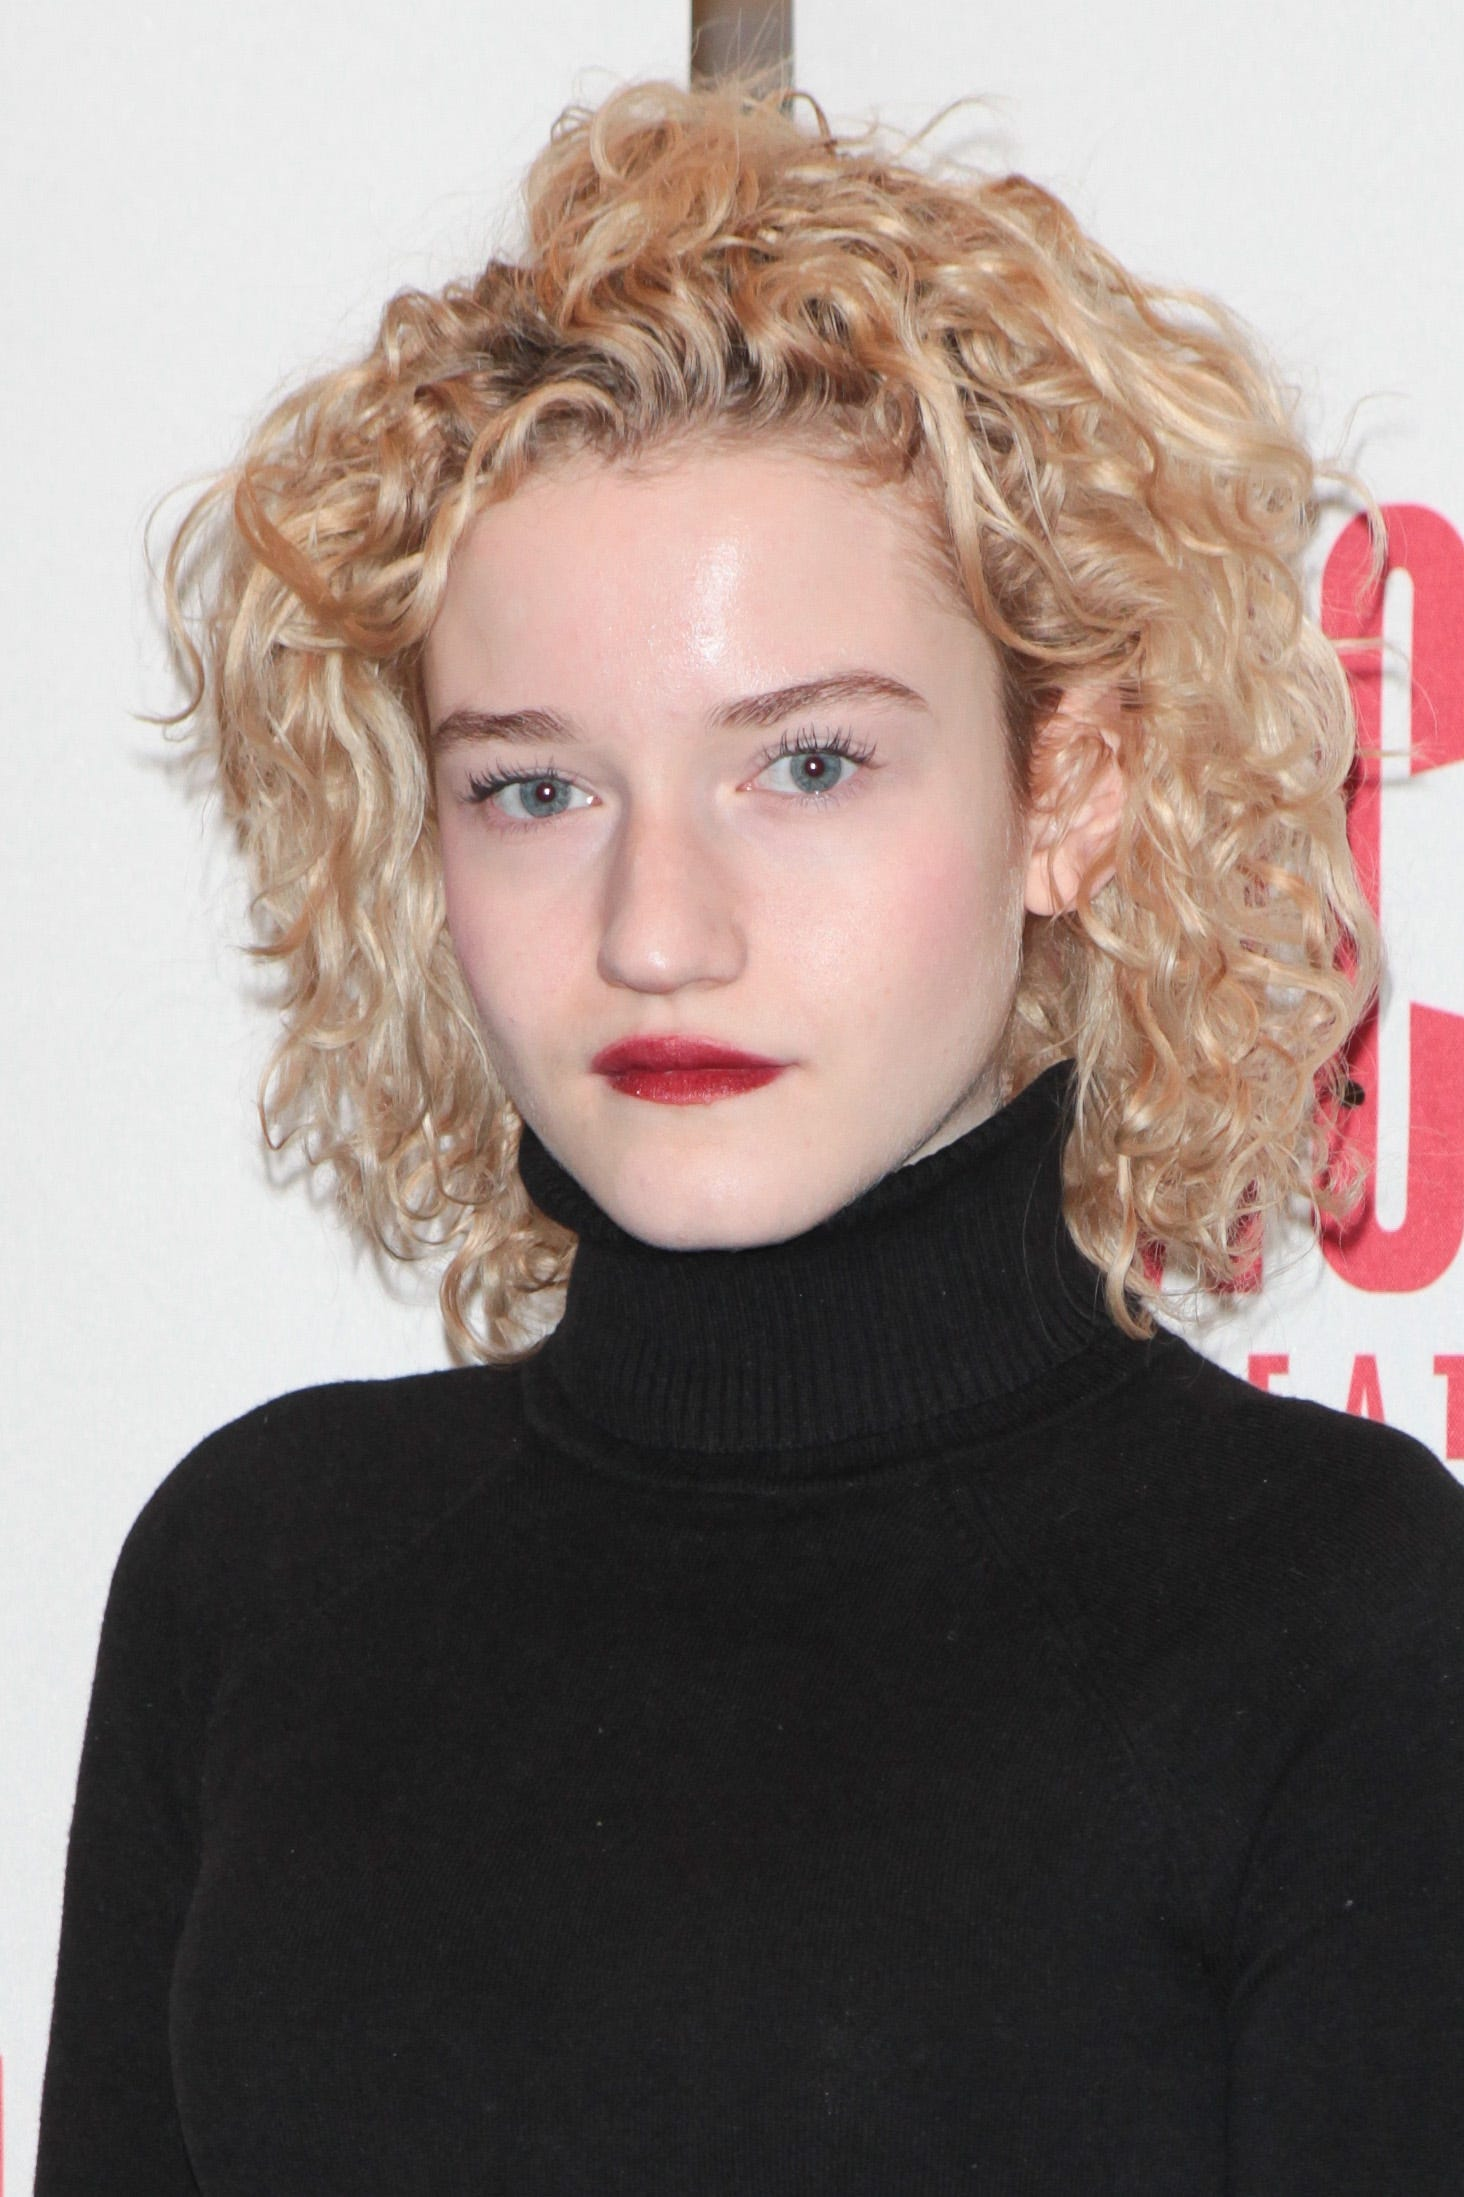 Julia Garner See Through 13 Photos: New Hairstyle Trends Summer 2017